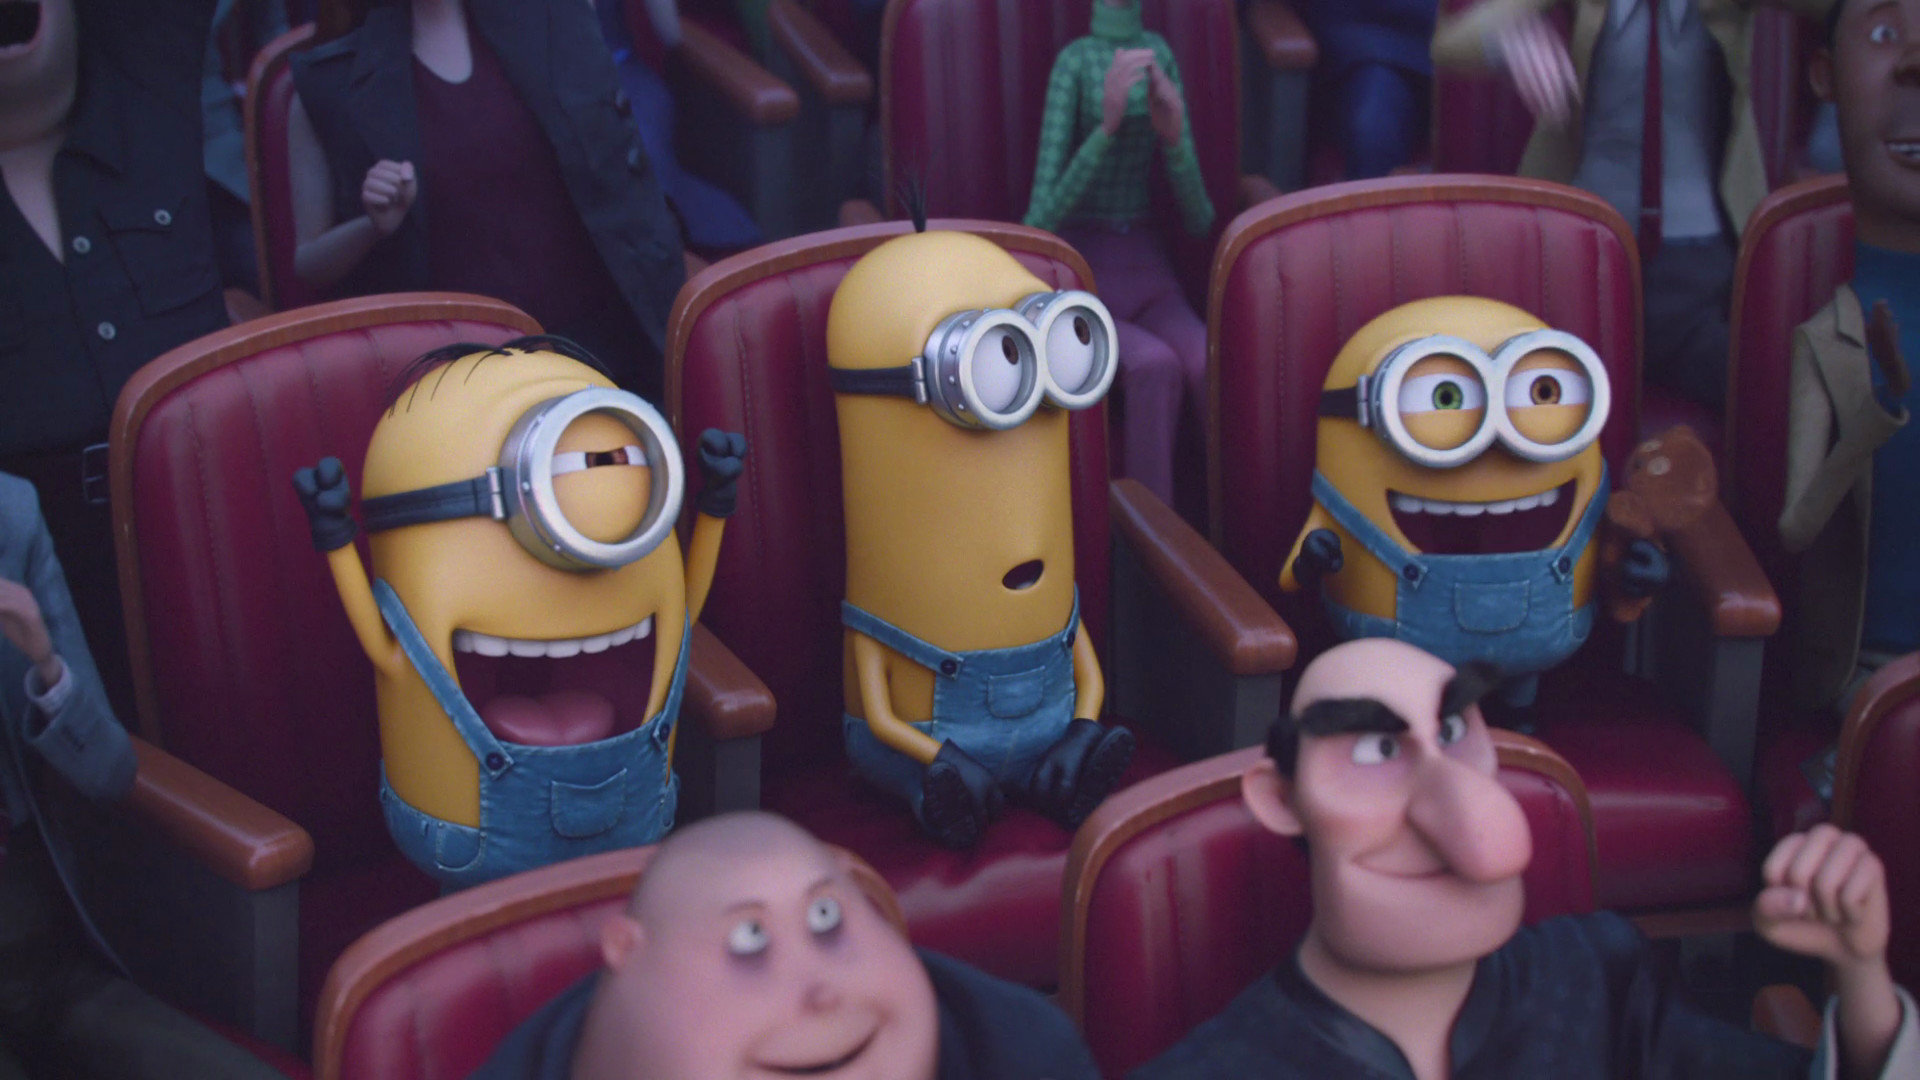 Free download Minions wallpaper ID:70245 1080p for computer